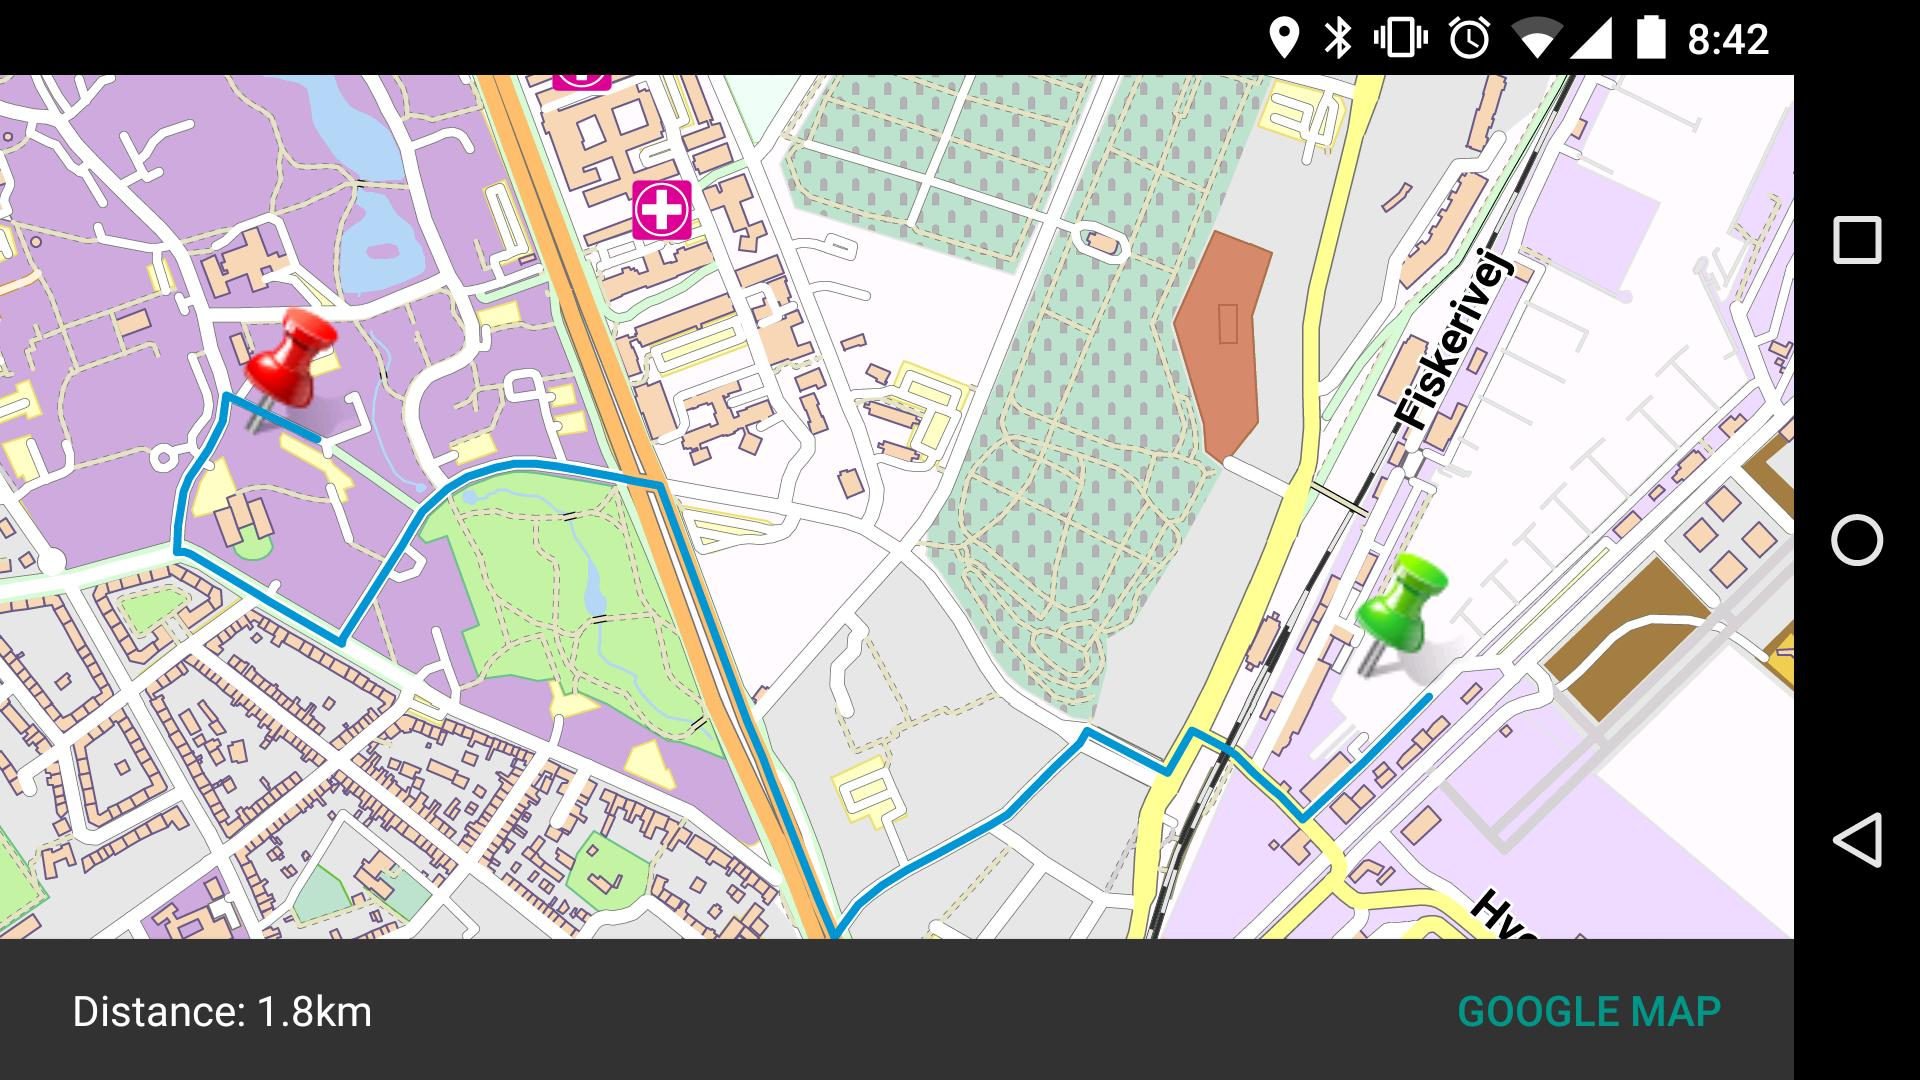 DOHA QATAR MAP for Android - APK Download on tanzania map, united arab emirates map, al udeid air base, middle east map, dead sea map, bahrain map, doha corniche, qatar airways, dushanbe map, qatar map, riyadh map, sana'a map, al jazeera, ankara map, kuwait map, abu dhabi, education city, world map, abu dhabi map, manama map, dubai map, mosul map, medina map, kuwait city, doha international airport, damascus map, jerusalem map, souq waqif, baghdad map, aspire tower,